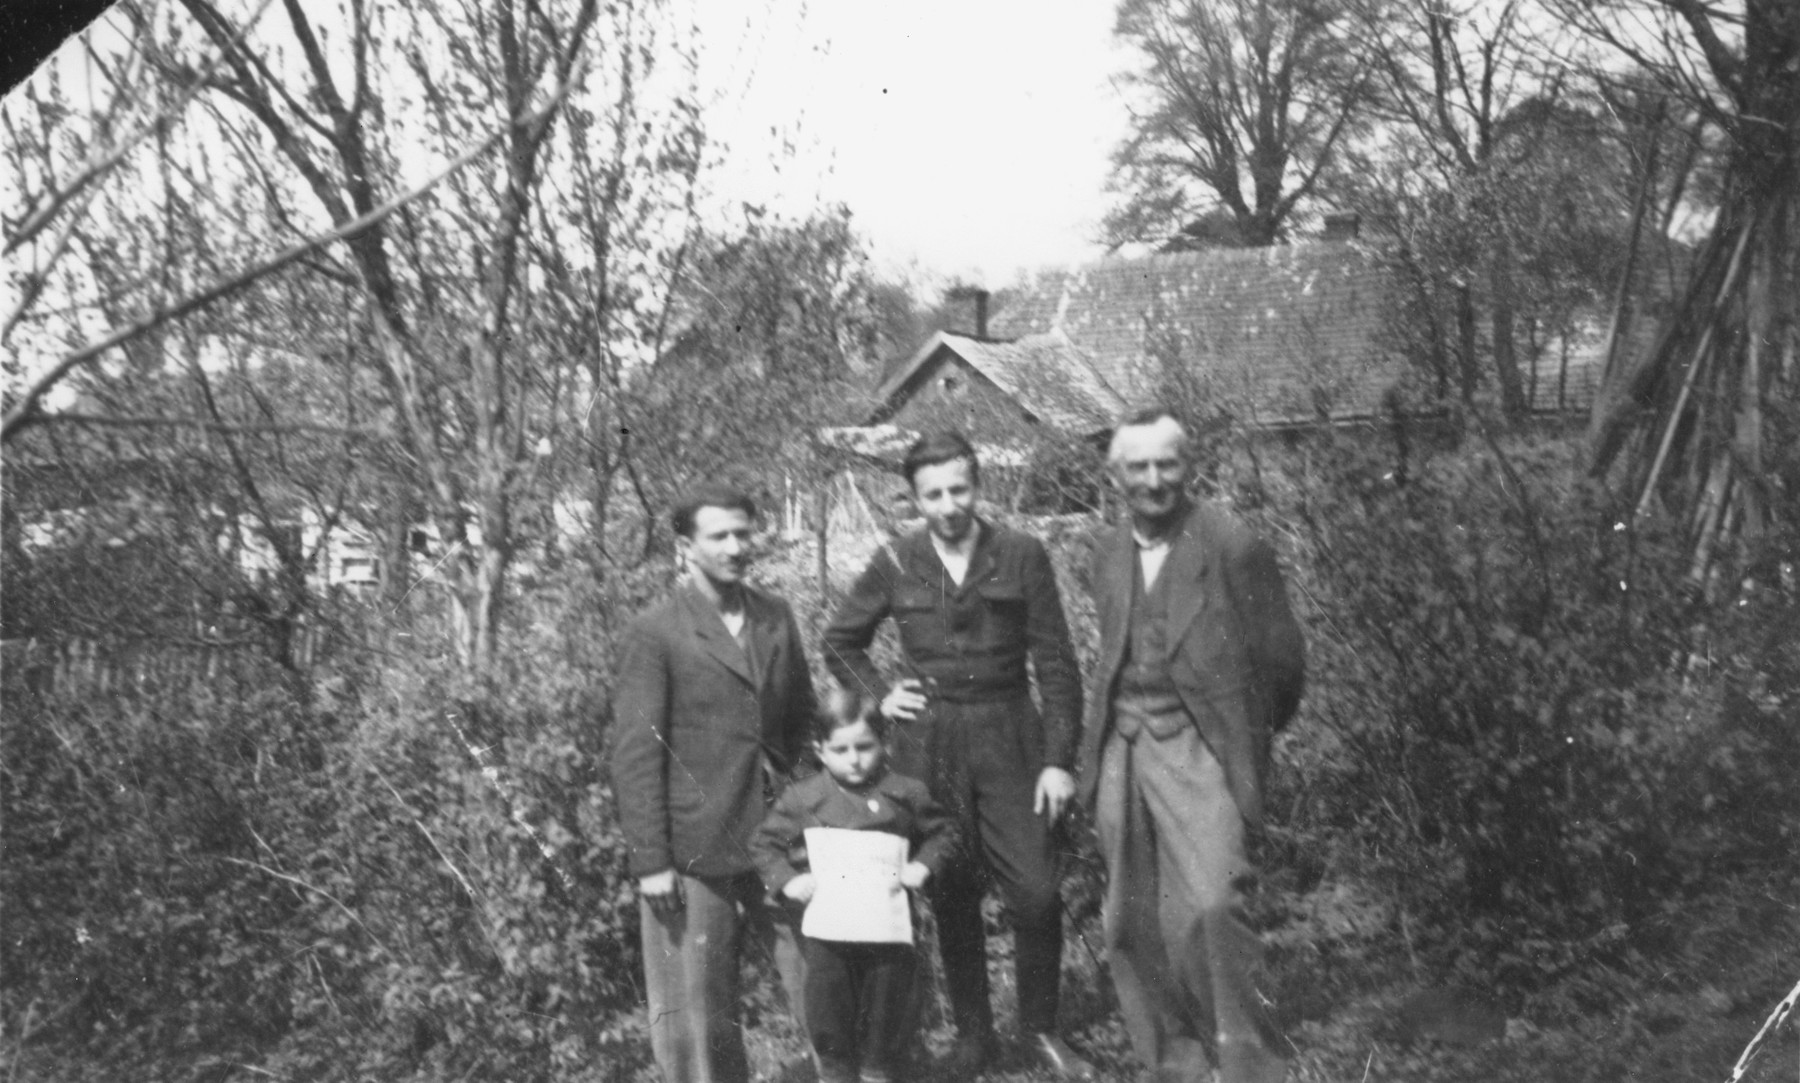 Nathan Berliner (center), a Jewish survivor, who during the German occupation of Poland had lived in hiding in Lancut, poses with his rescuer, Mr. Spiwak (right), who allowed him to live in his barn.  Also pictured is Beniek Kleinminc (left) and Itzhak Gerstein (in front).